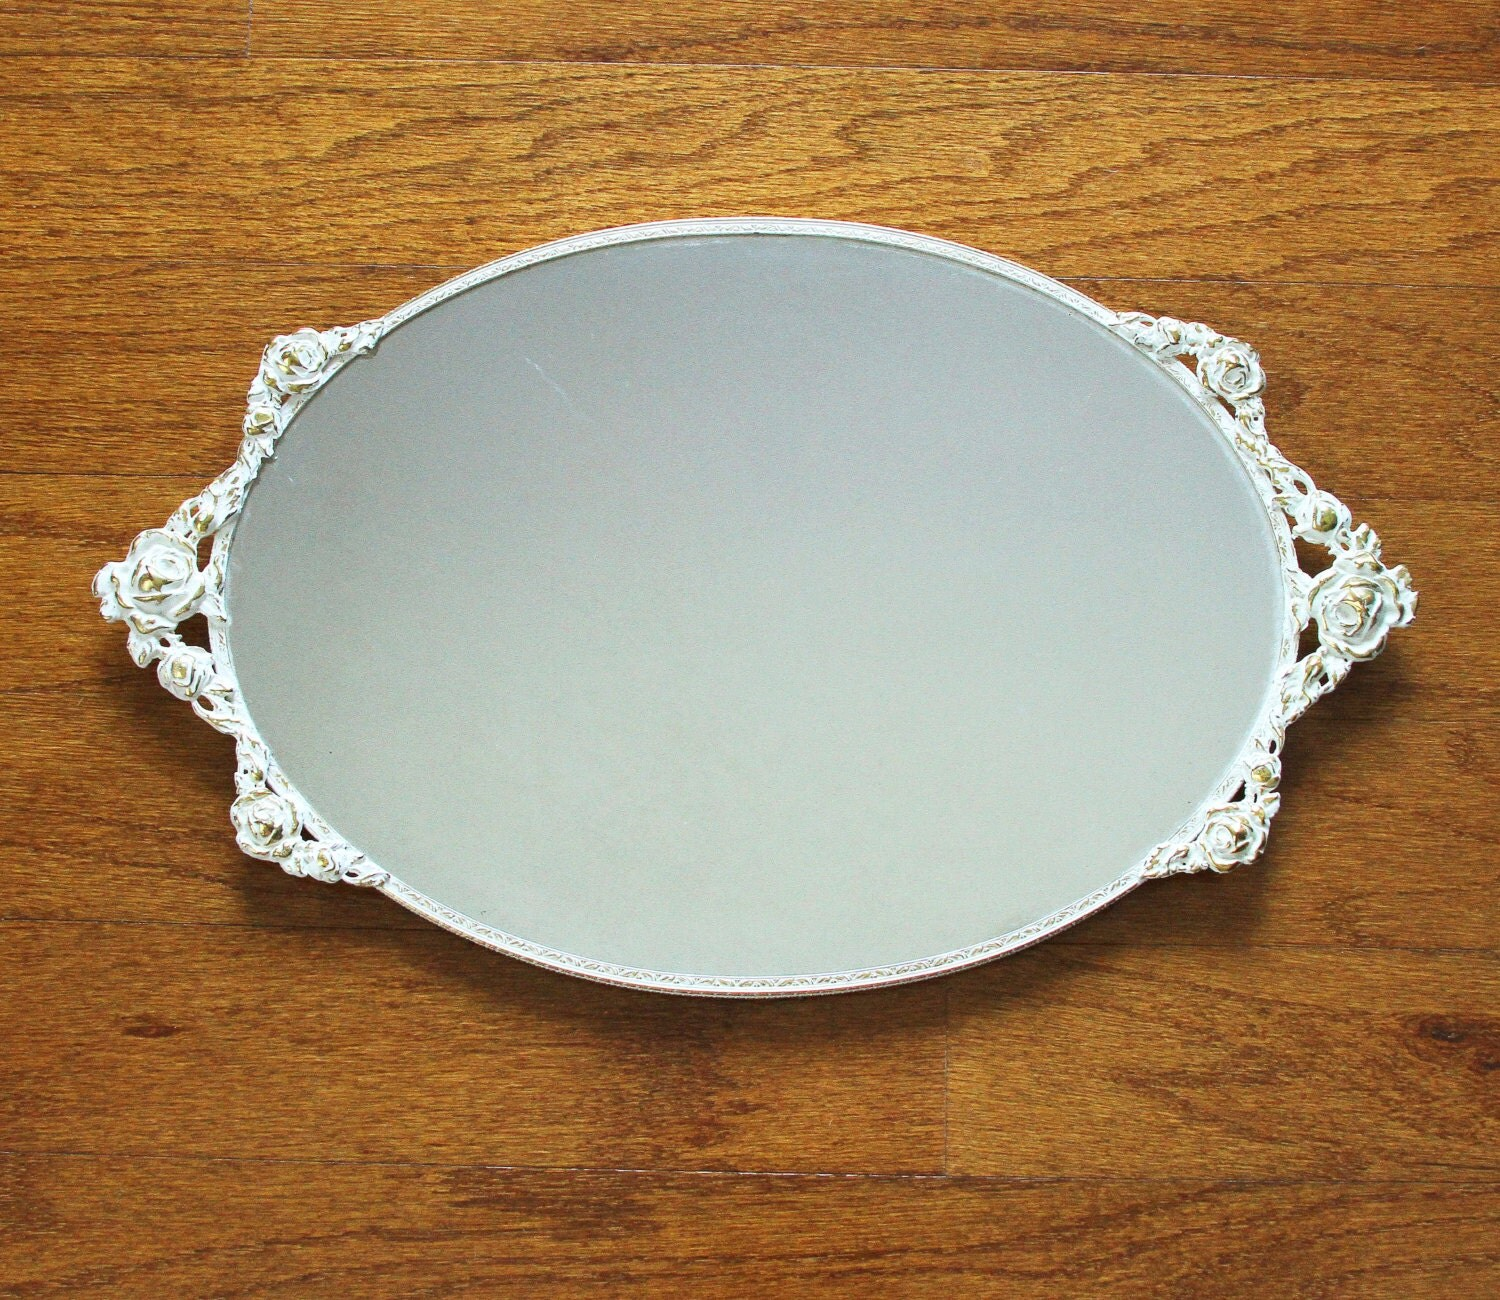 Oval mirrored vanity tray perfume tray with handles white for Mirrored bathroom tray